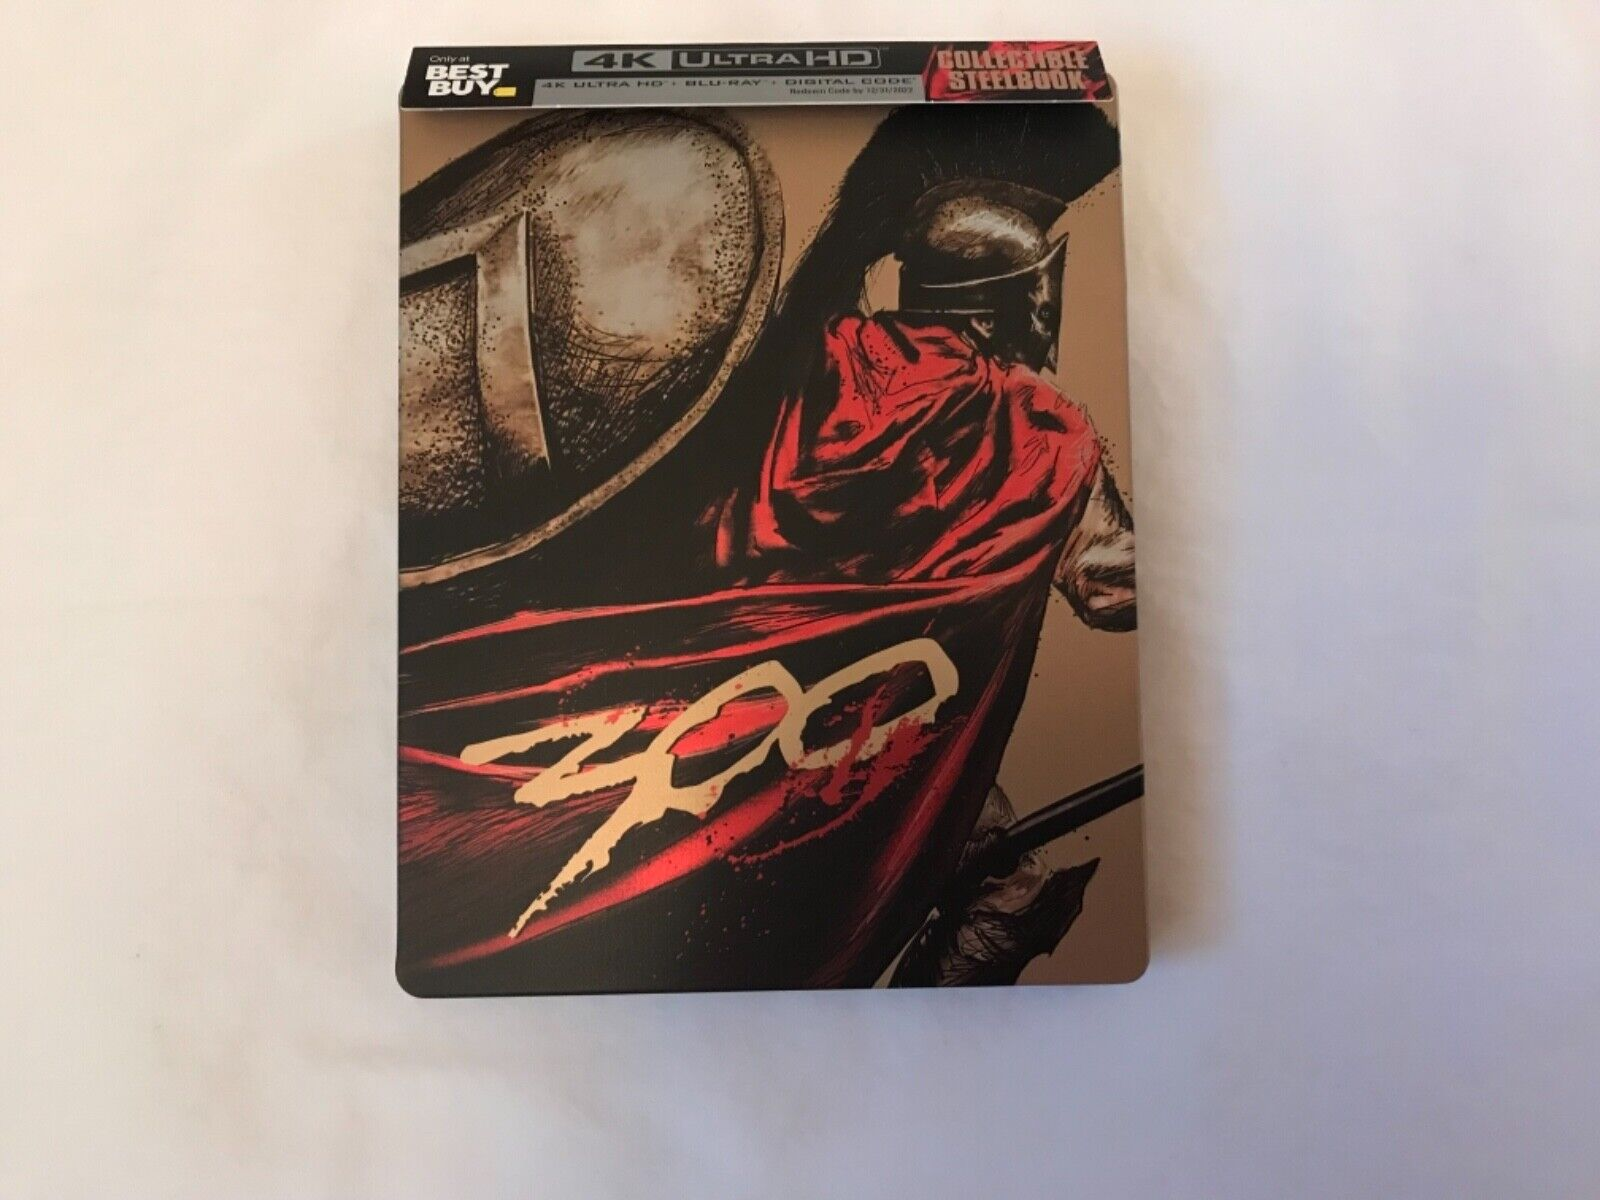 300 - Best Buy Steelbook 4K Blu-ray Digital  - $45.00